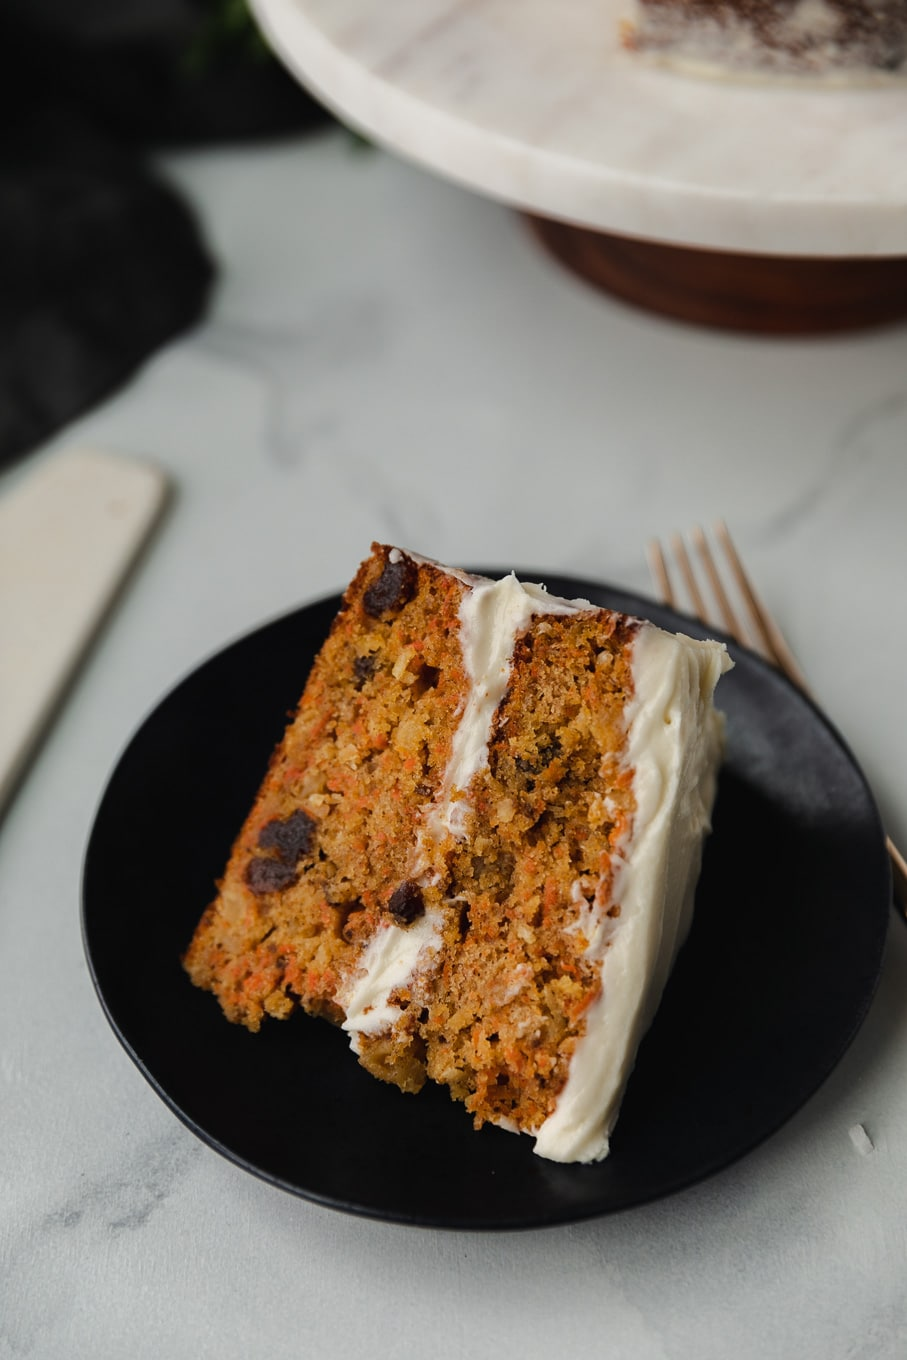 Close up shot of a slice of carrot cake on a black plate